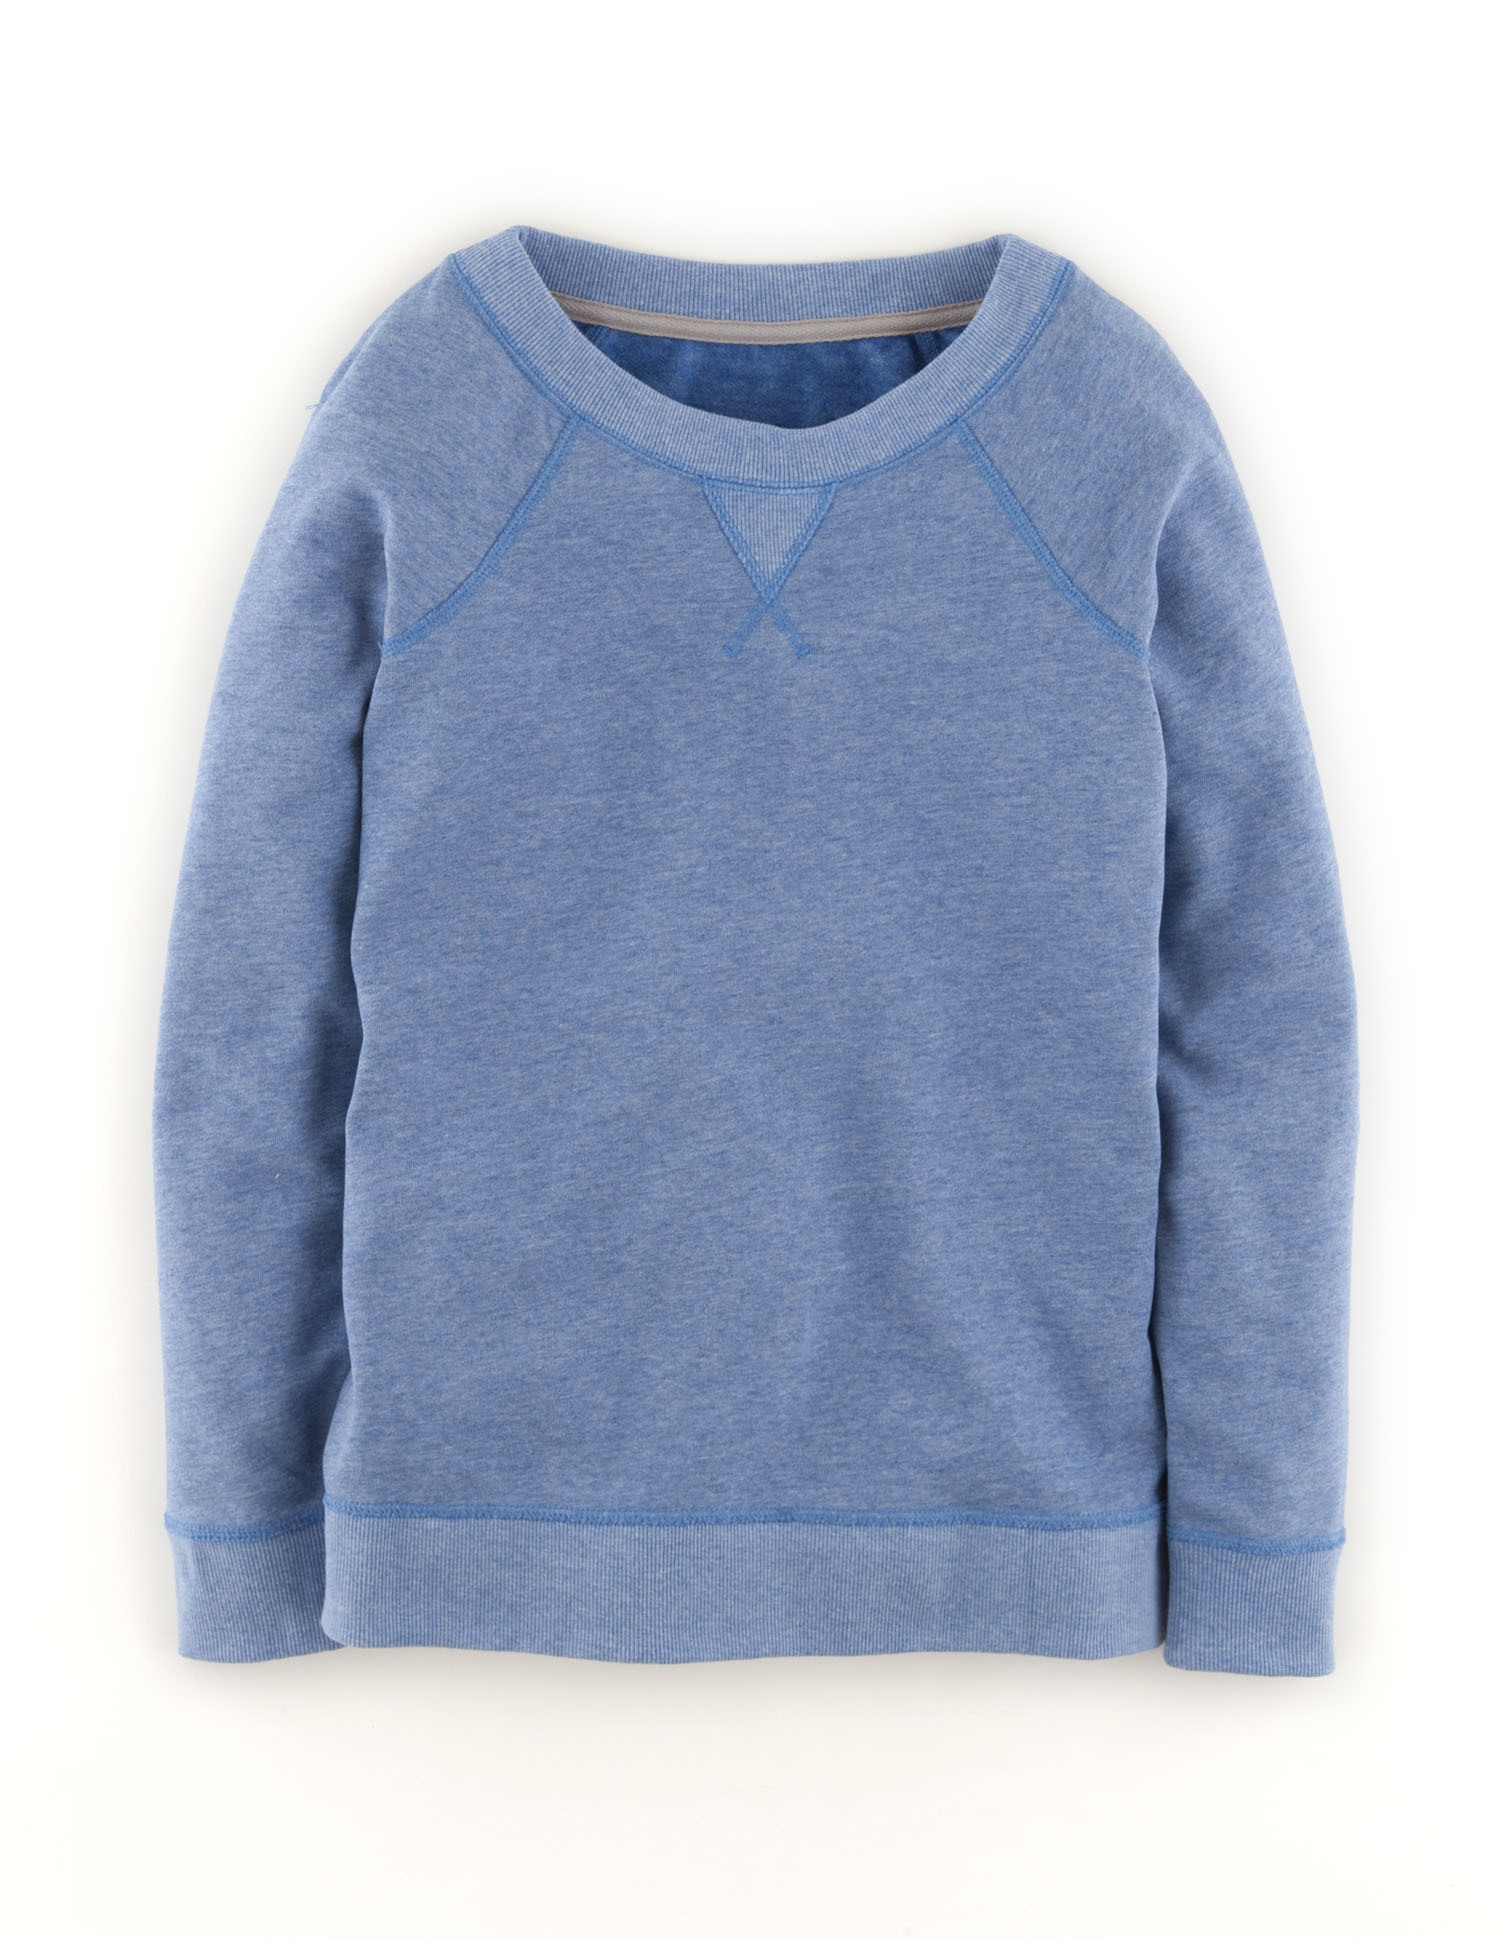 Raglan Sweatshirt (Blues Painted Floral)